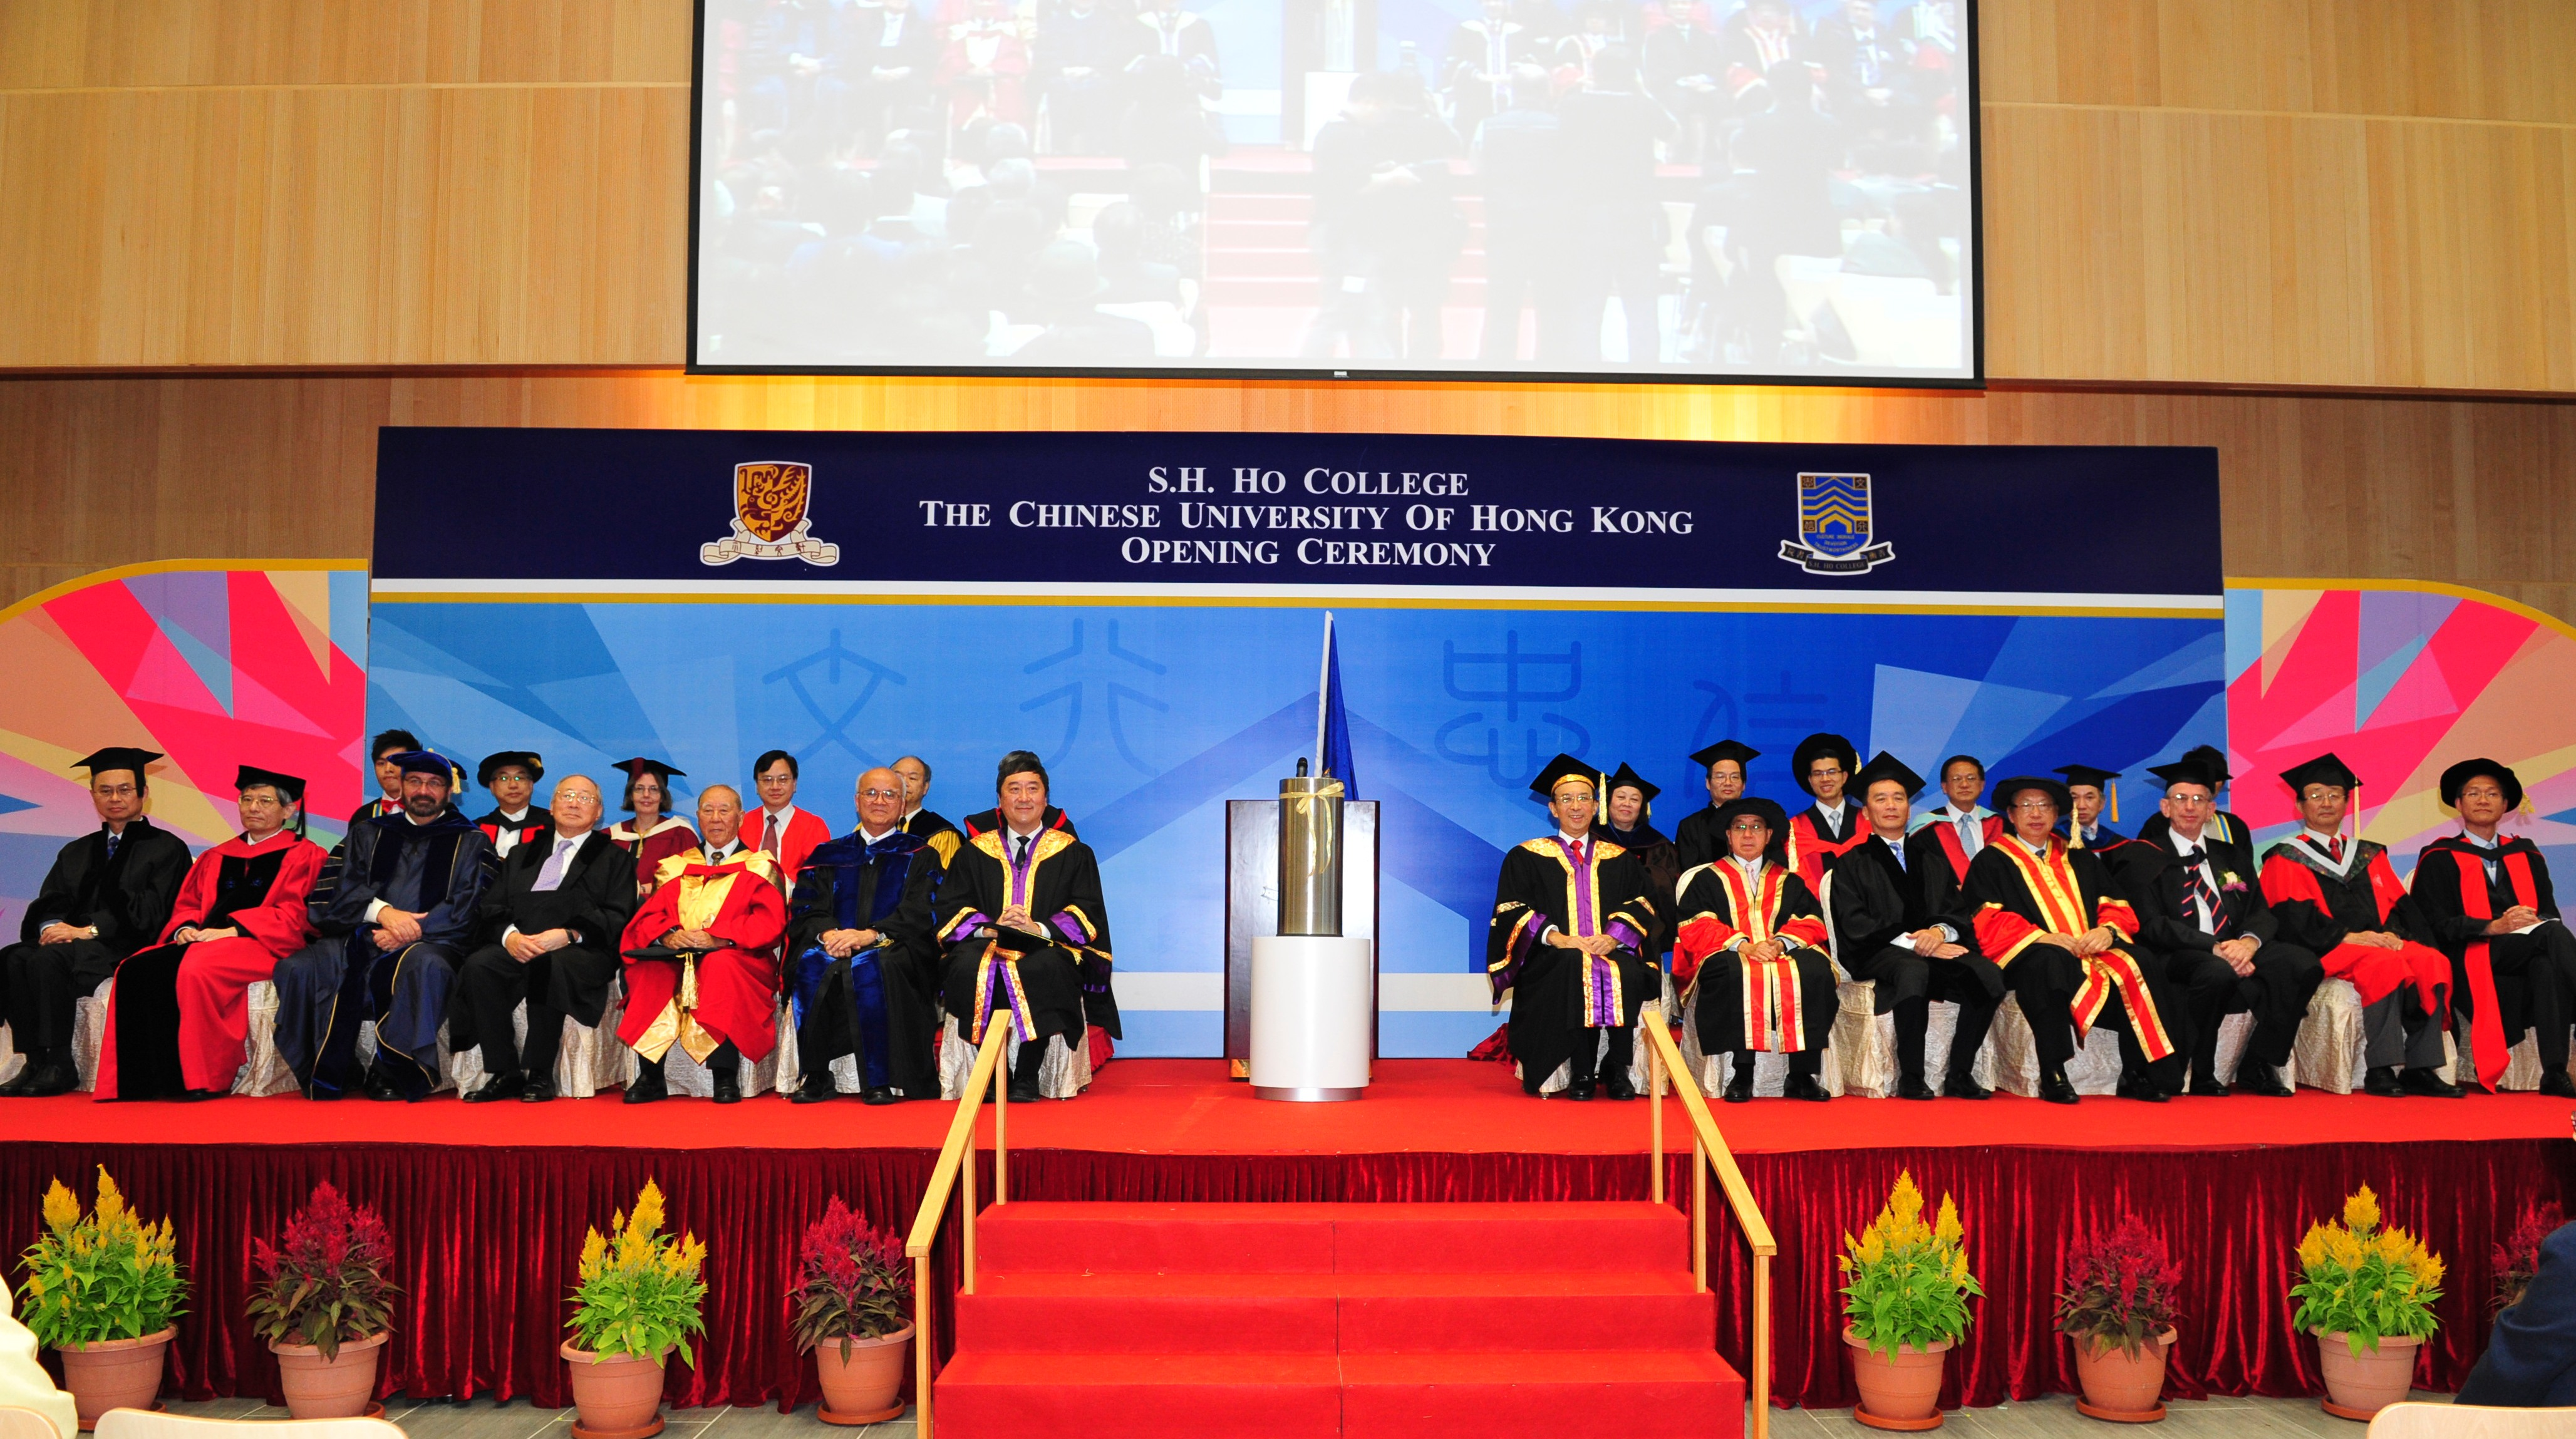 (3rd – 7th from left, front row) Prof. Matthew Gutmann, Vice President of Brown University; Mr. Lin Chung-pak, Trustee of Chan Chun Ha Charitable Trust; Dr. David Ho, Chairman of The S.H. Ho Foundation; Prof. Samuel Sun, Master of S.H. Ho College; Prof. Joseph Sung, Vice-Chancellor of CUHK; (7th – 2nd from right, front row) Dr. Vincent Cheng, Chairman of the University Council; Dr. Tzu-leung Ho, Chairman of the Committee of Overseers, S.H. Ho College; Mr. Norman Ho, Trustee of Ho Tim Foundation; Mr. Thomas Liang, Chief Executive Officer of Wei Lun Foundation; Lord Wilson of Dinton, Master of Emmanuel College, Cambridge University; and Prof. Xu Chongren, Dean of Yuanpei College, Peking University.